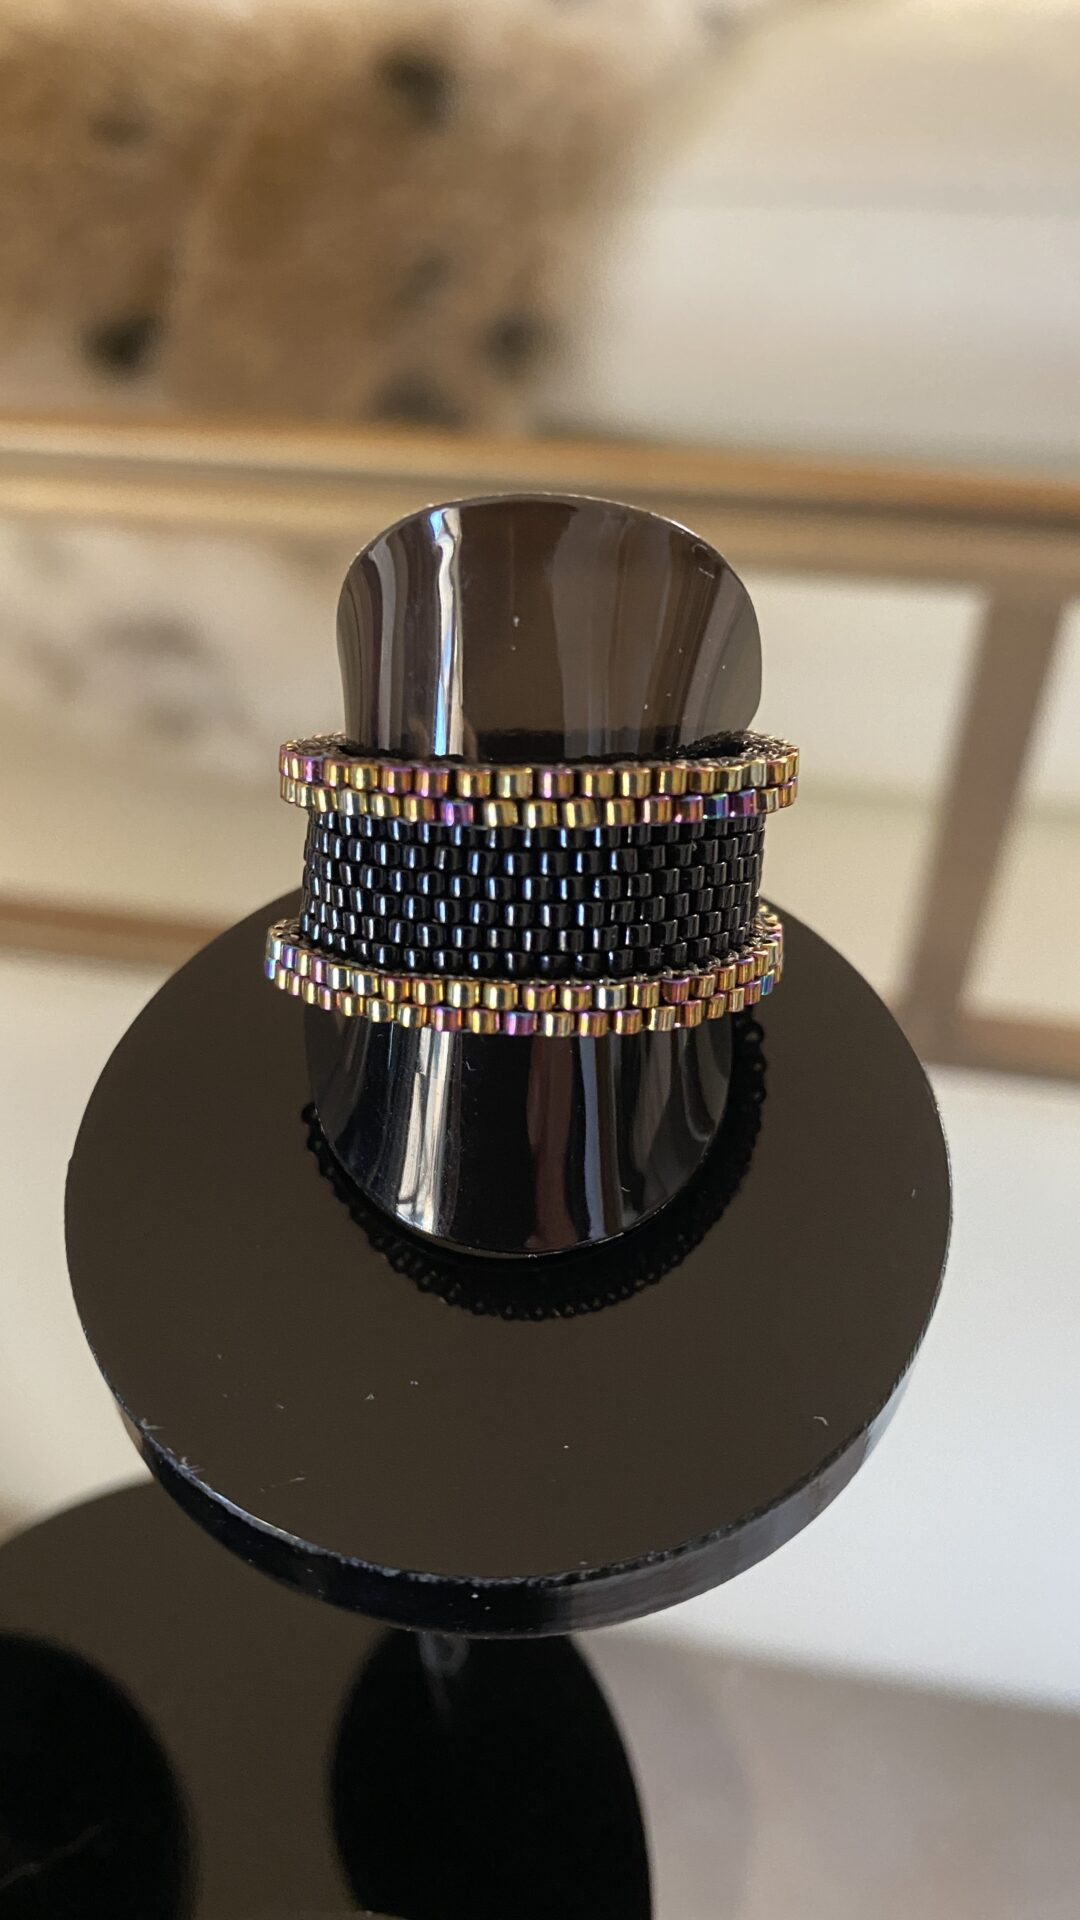 Japanese Seed Bead Handwoven Ring 24k Gold Plated Accents In Dark Iris Size US 10.5 By Covet And Desire